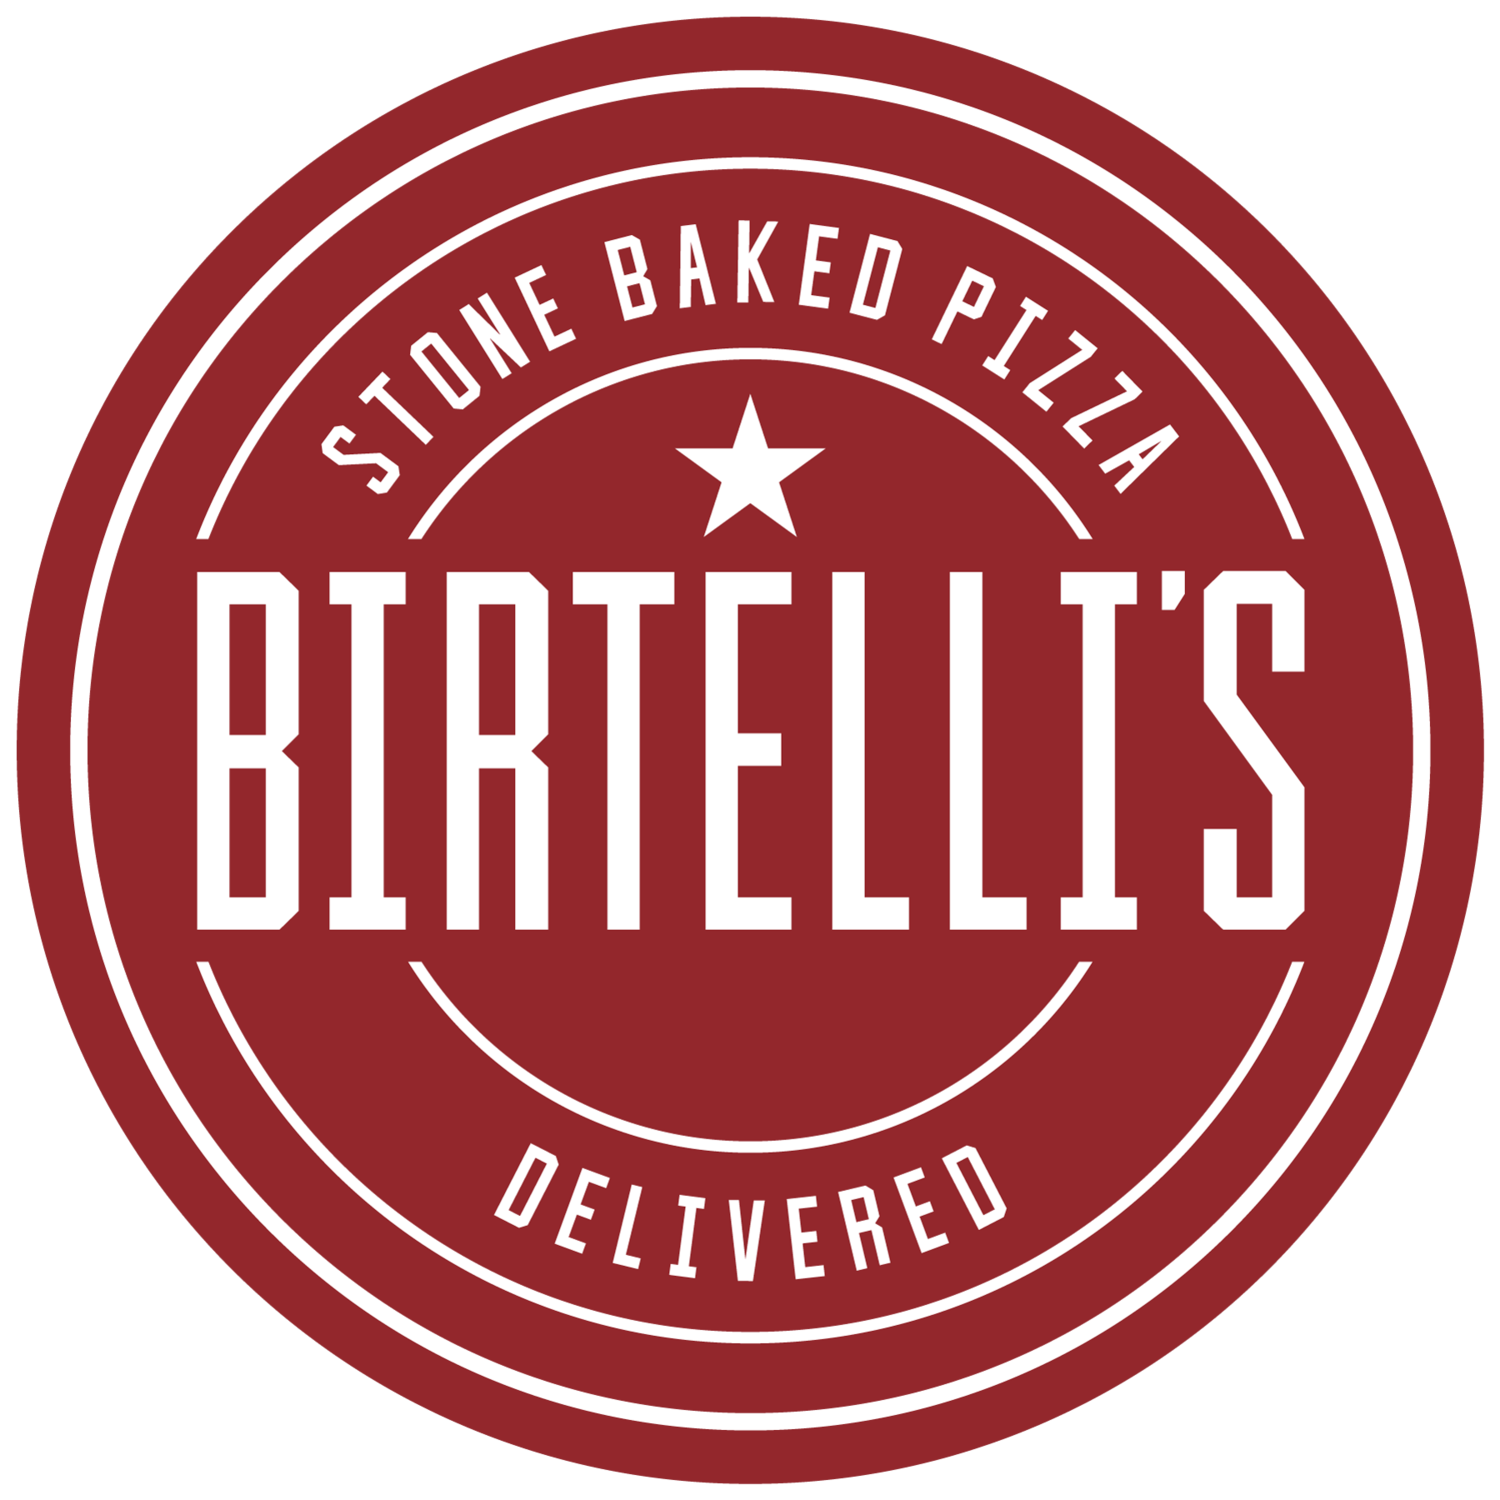 Birtelli's | Stone Baked Pizza. Delivered.